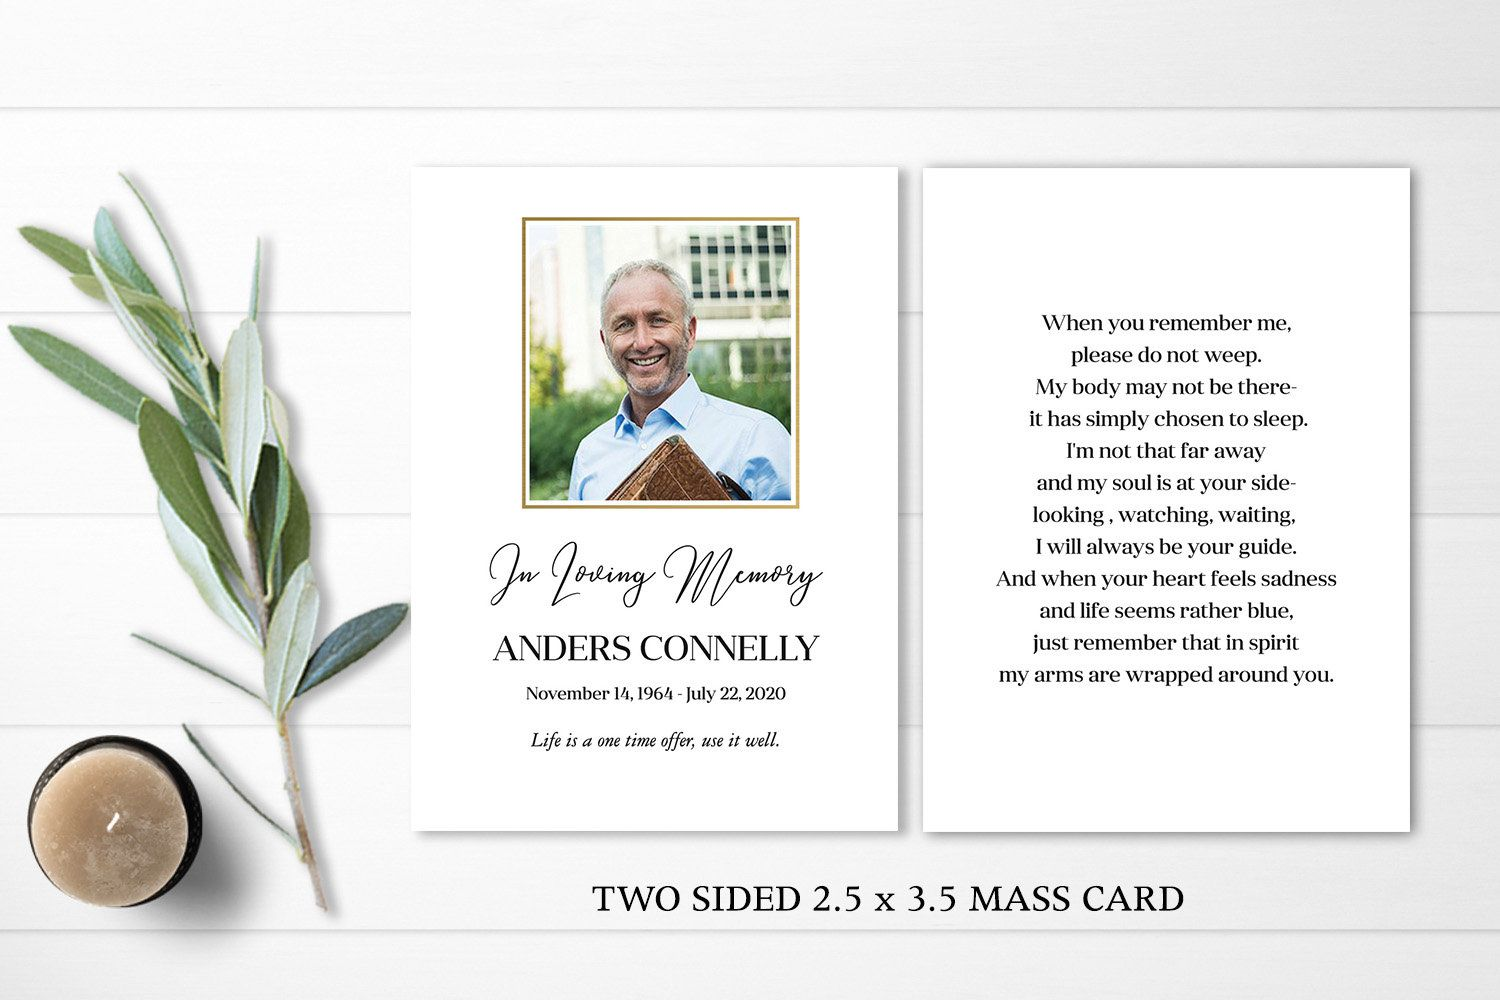 Funeral Card Printable Mass Card With Photo Template 2 5 X 3 5 Etsy Card Templates Printable Funeral Cards Template Printable